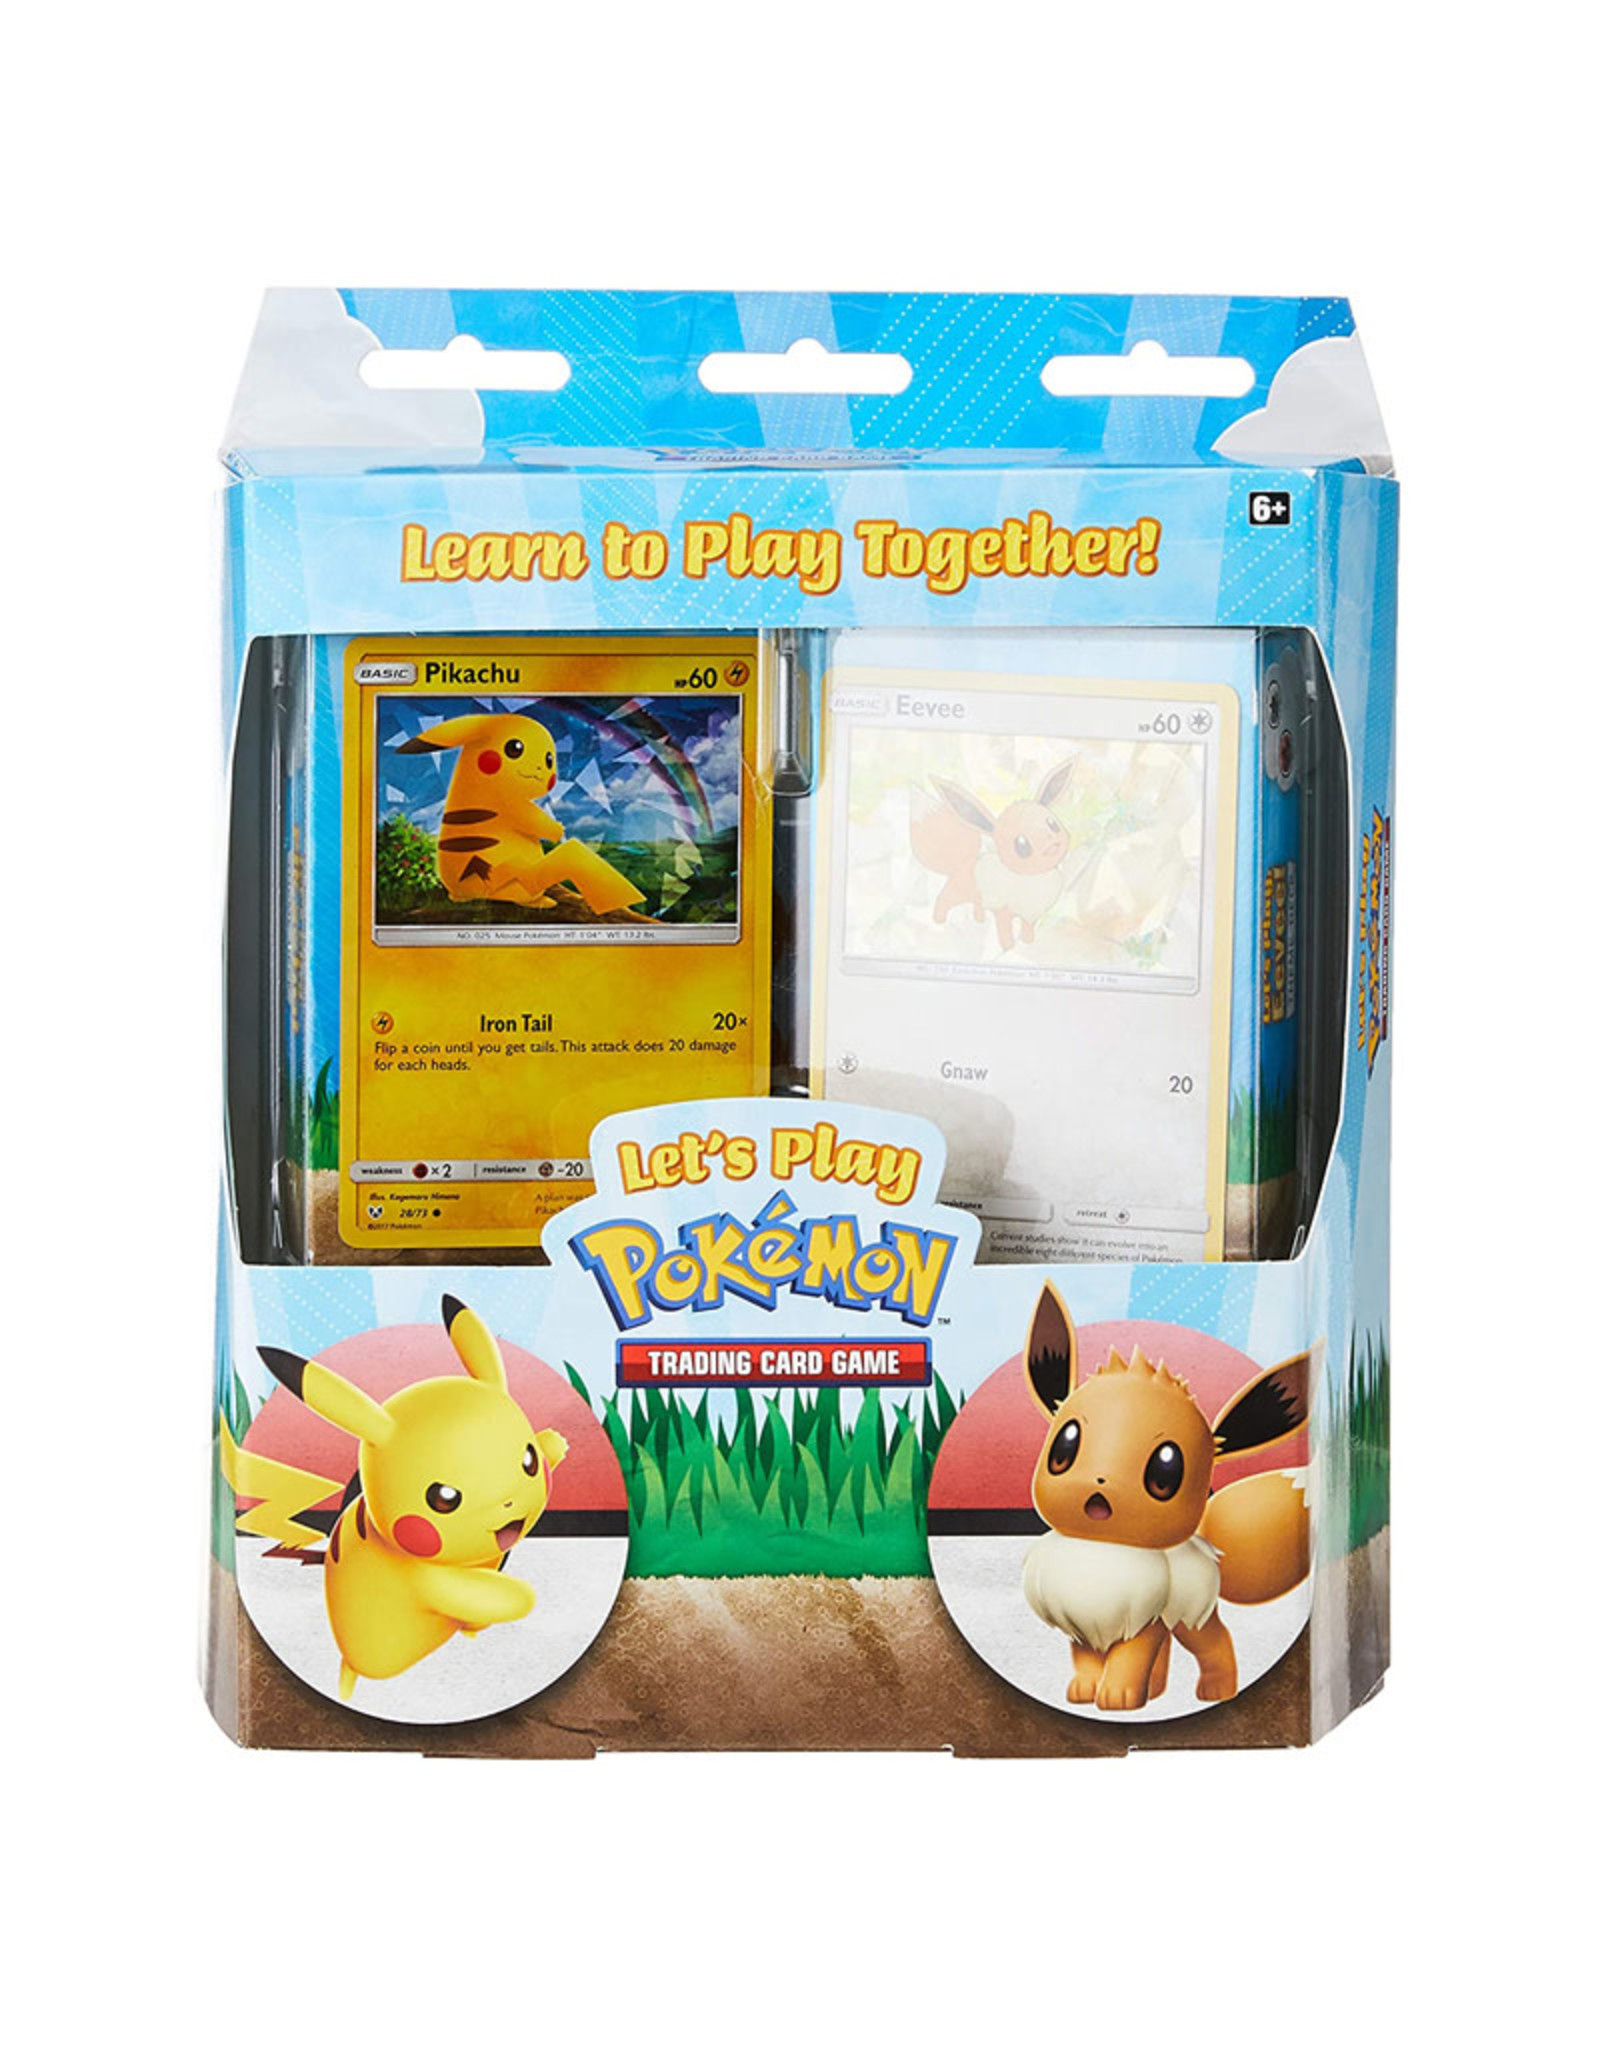 Pokemon Pokemon Let's Play Box (Pikachu and Eevee)